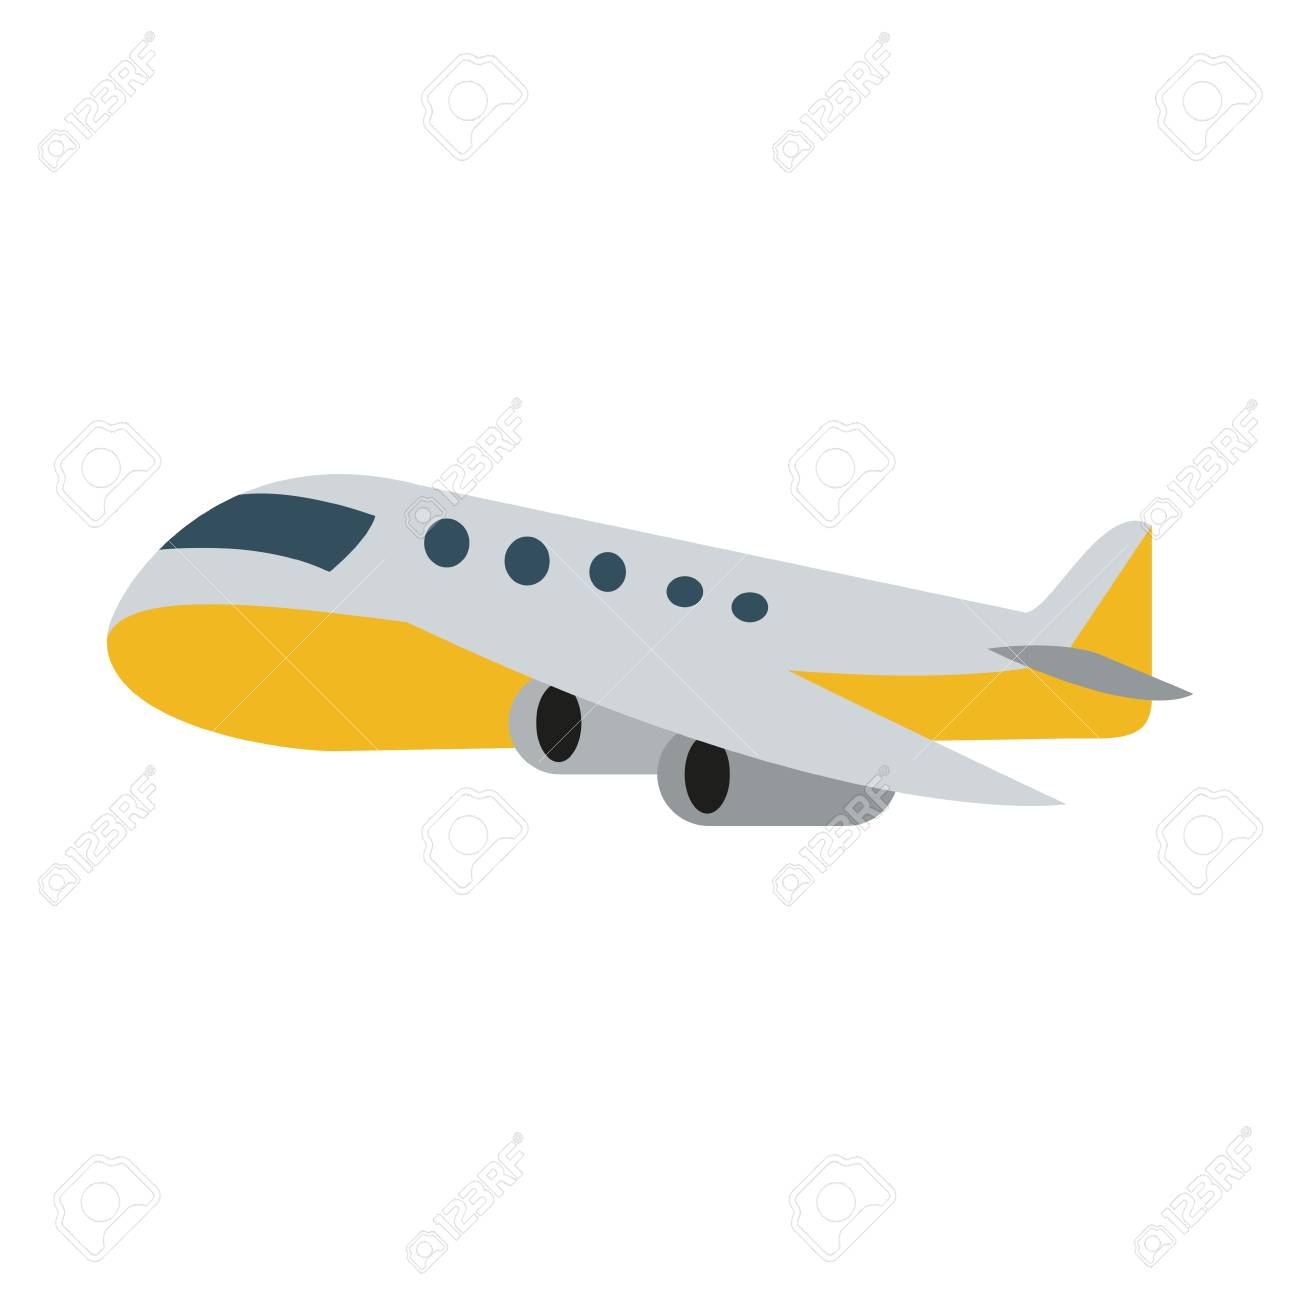 airplane sideview icon image vector illustration design.